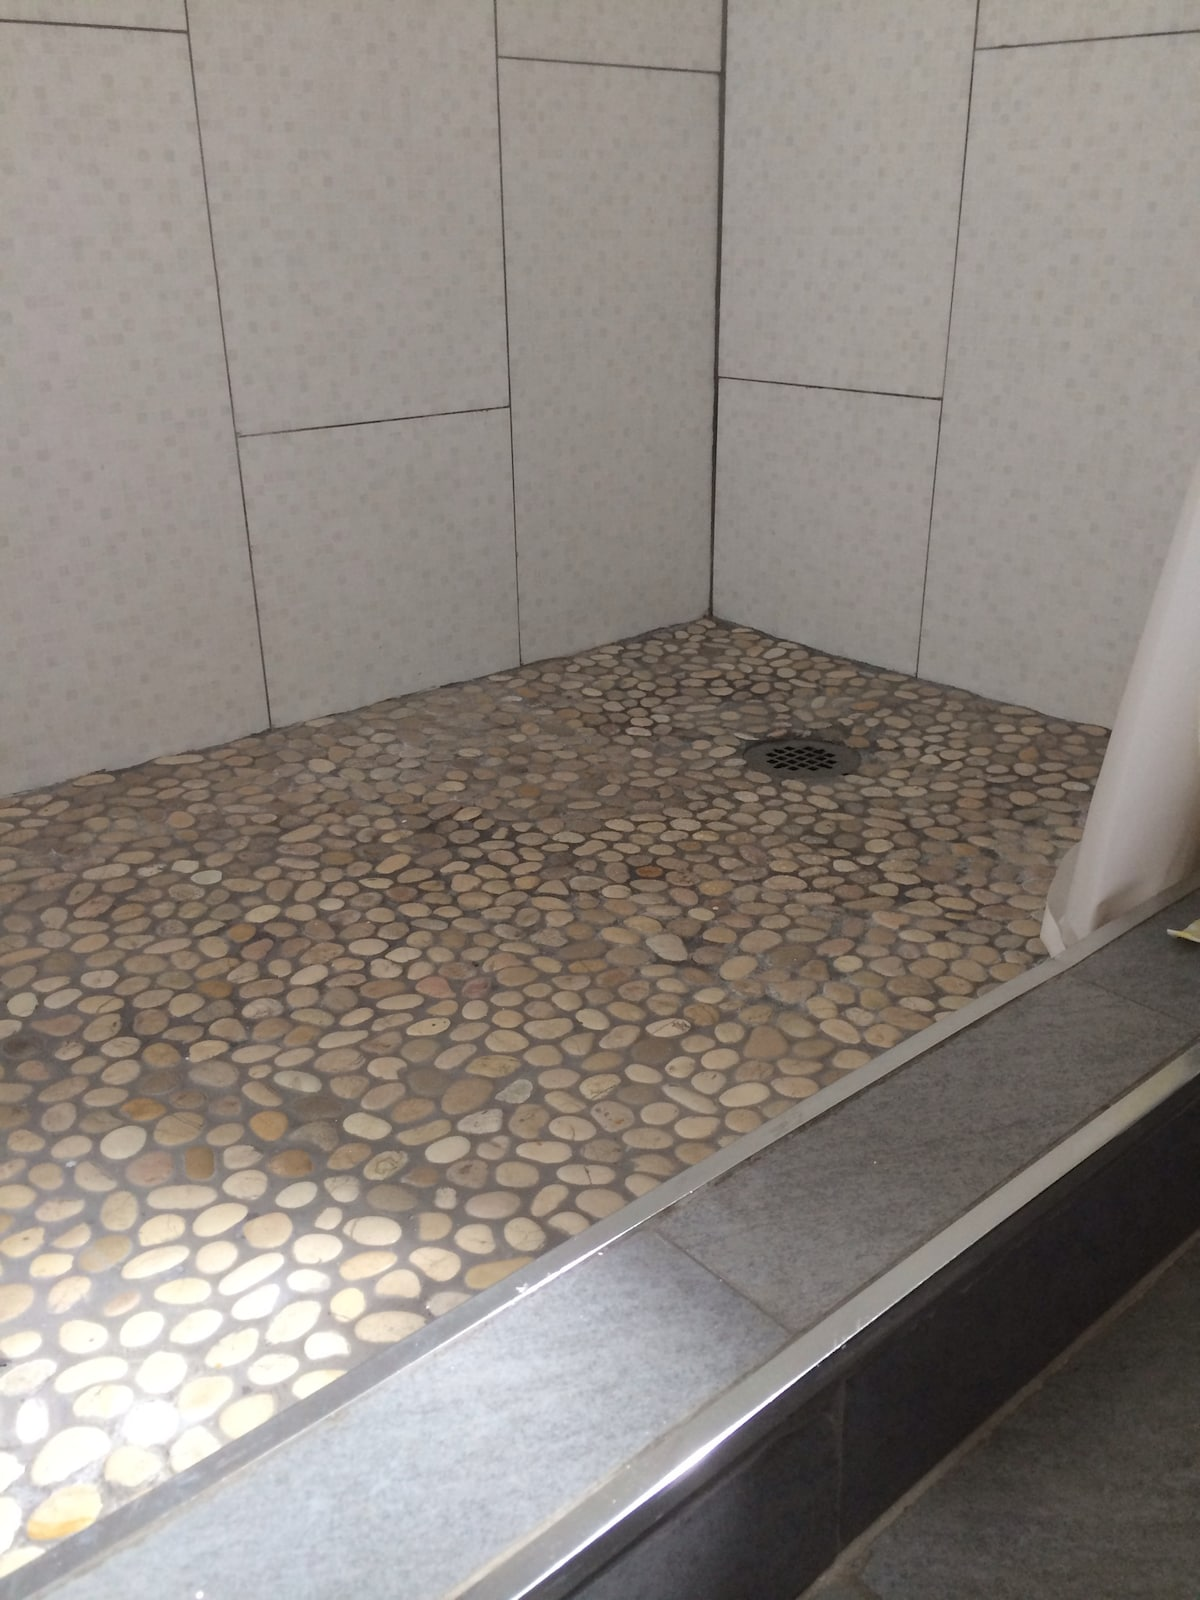 Pebble stone floor tiles for your soothing shower experience.